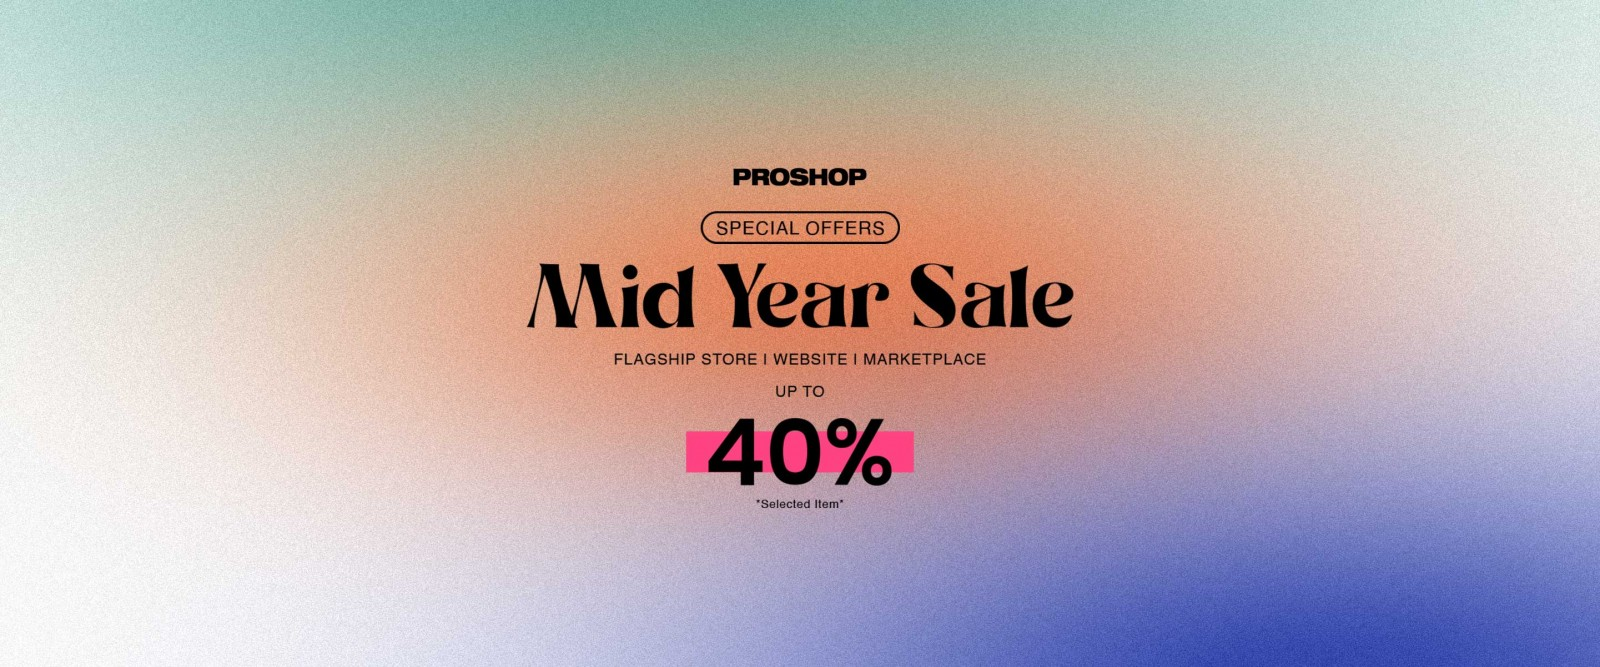 MID YEAR SALE 40%